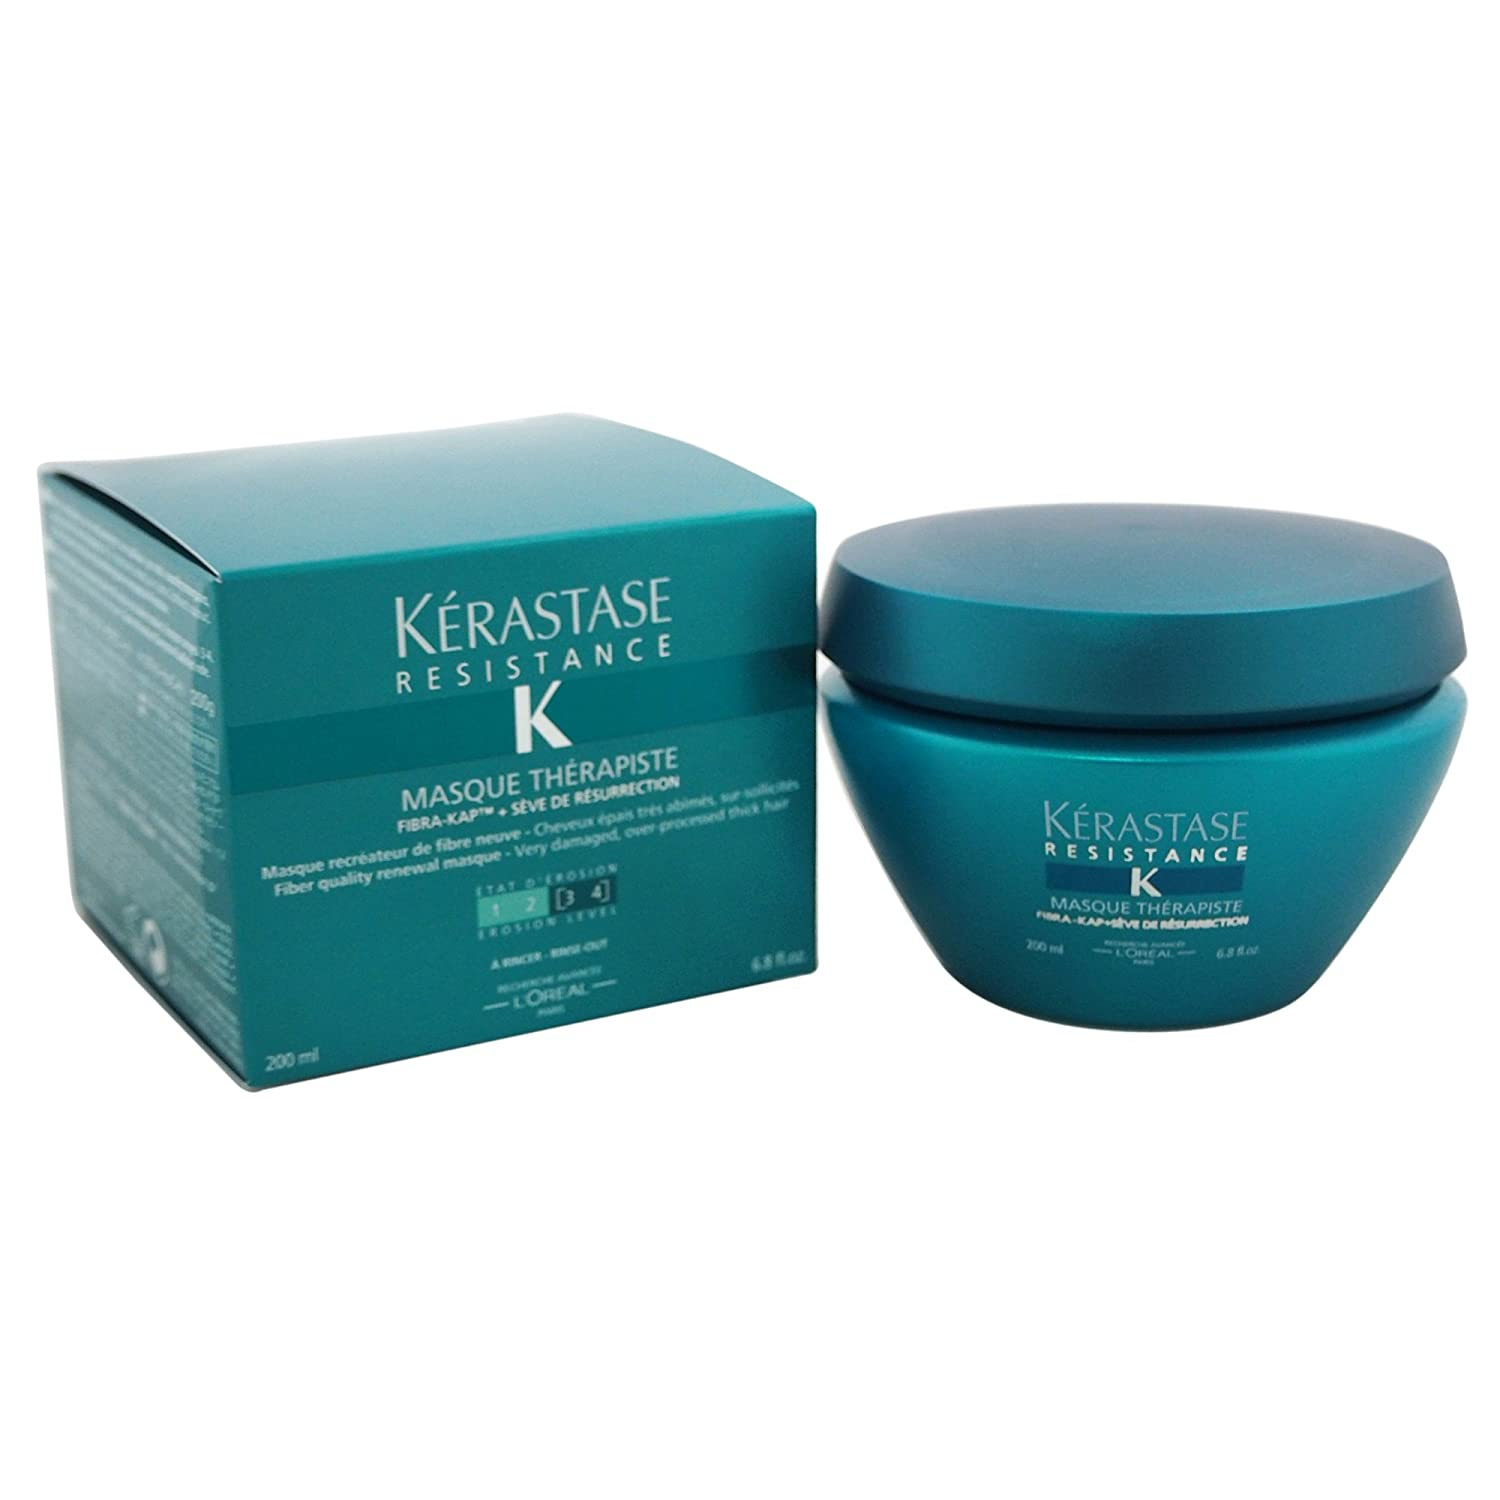 KERASTASE Resistance Therapiste Masque multi Oz Ranking TOP3 Fl All items in the store 6.8